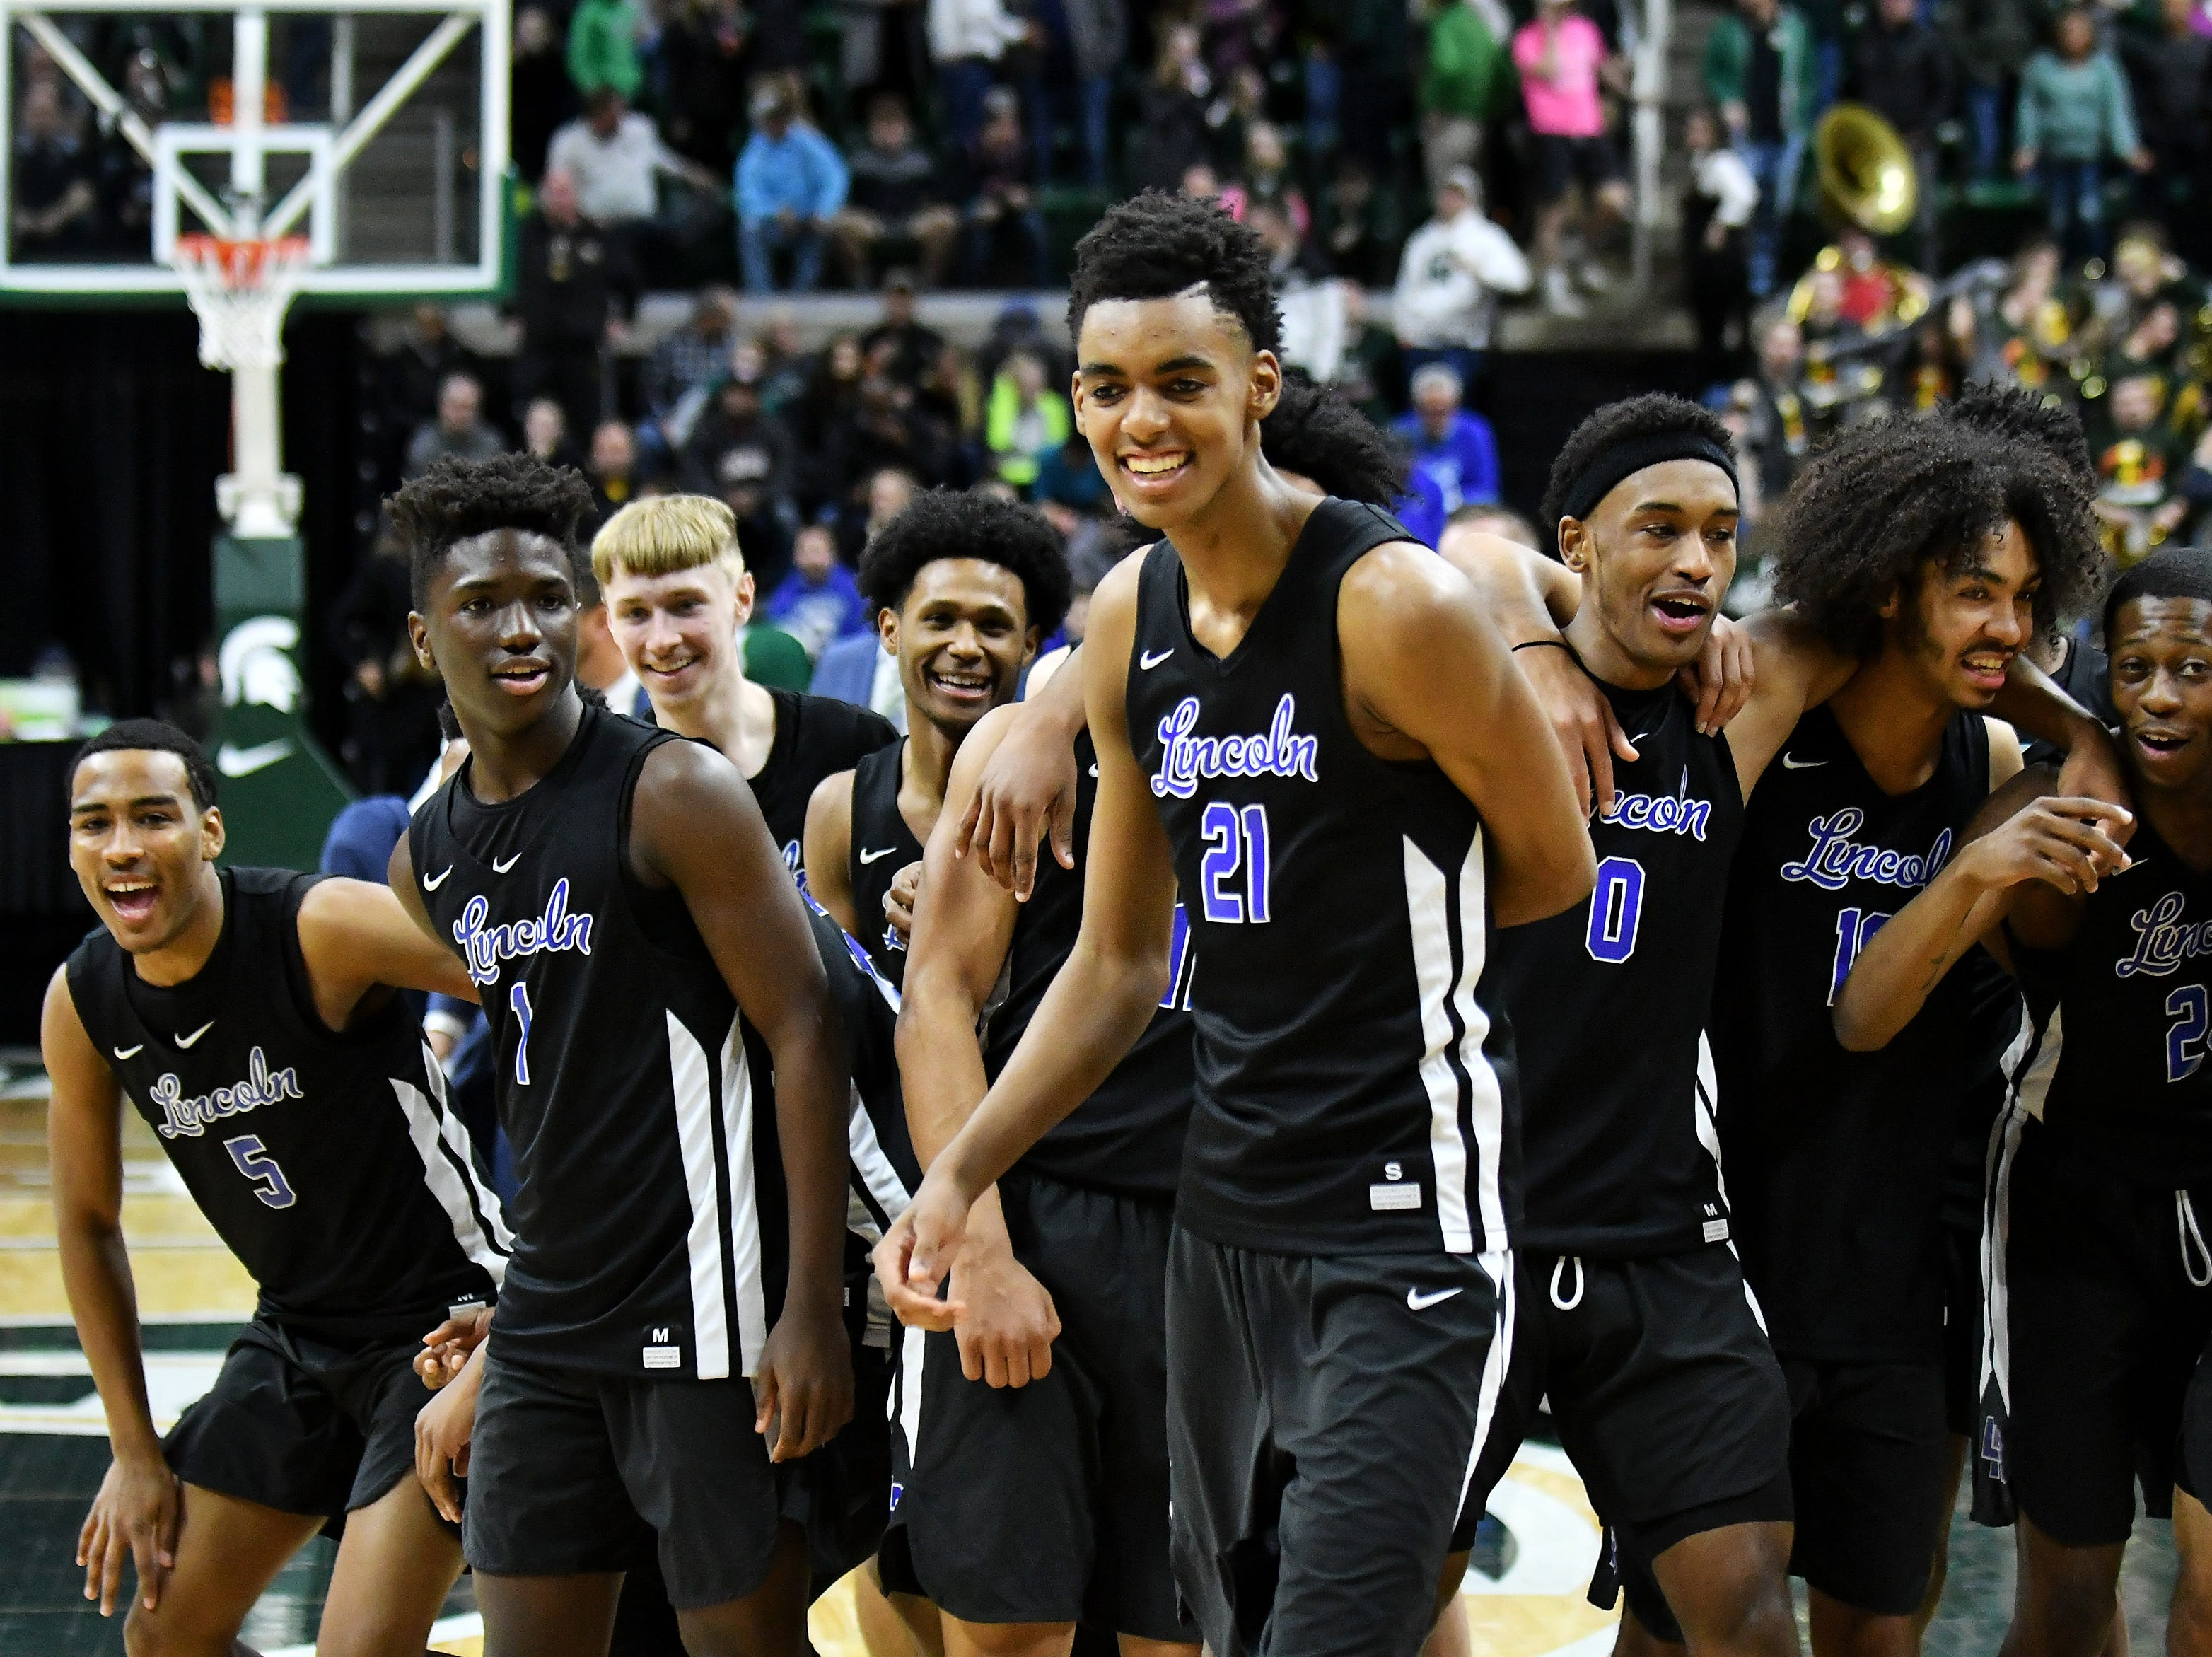 Lincoln's Emoni Bates (21) and his teammates react after defeating Howell 72-56 in the Division 1 semifinals at the Breslin Center in East Lansing, Mich. on March 15, 2019.